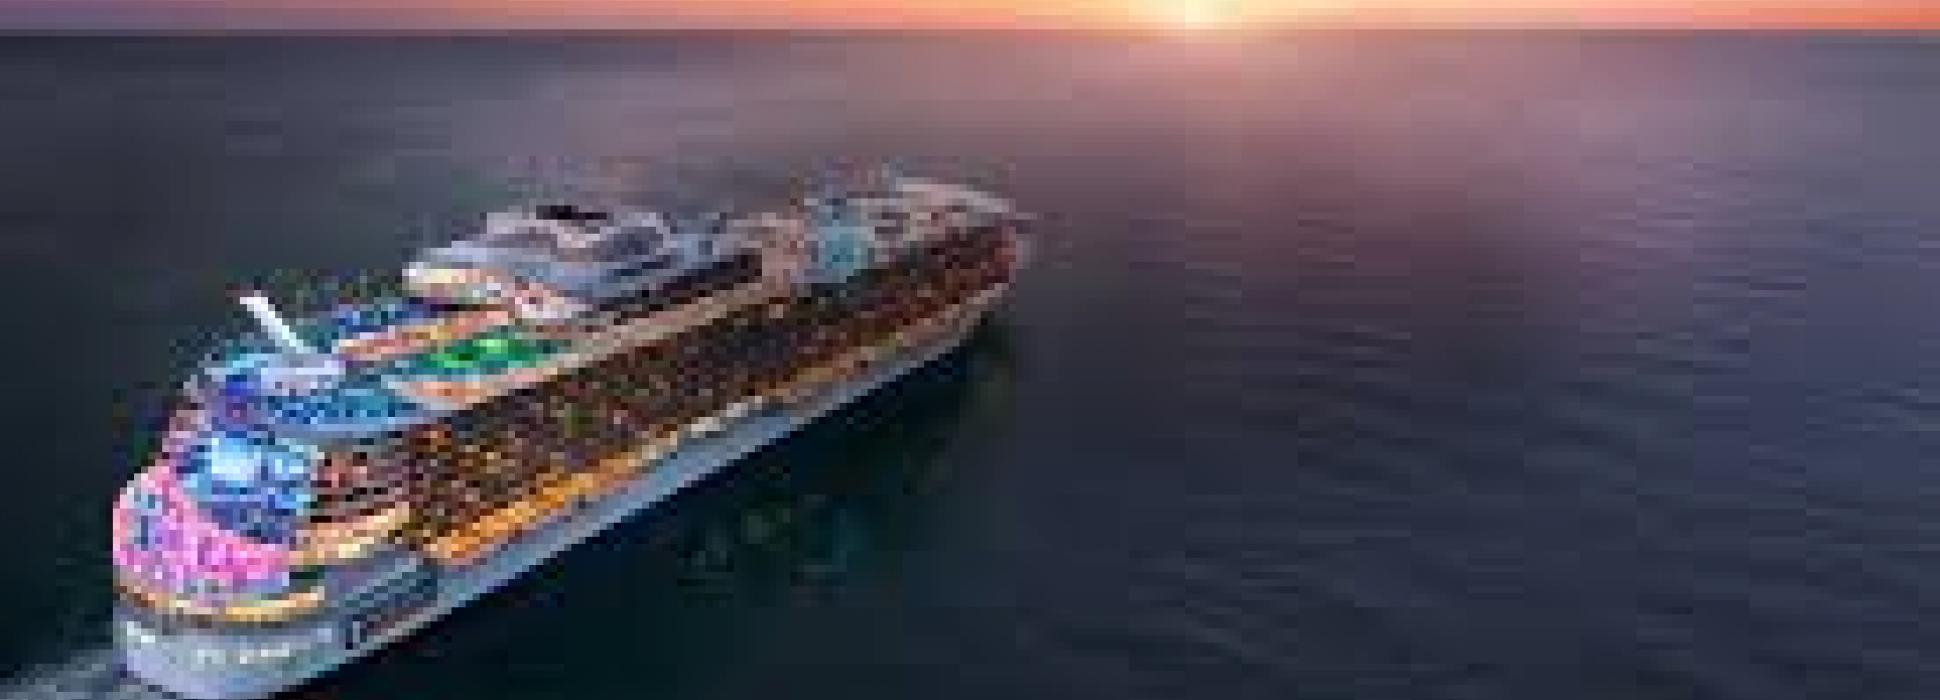 The Oasis-class giant liner will be called Wonder of the seas